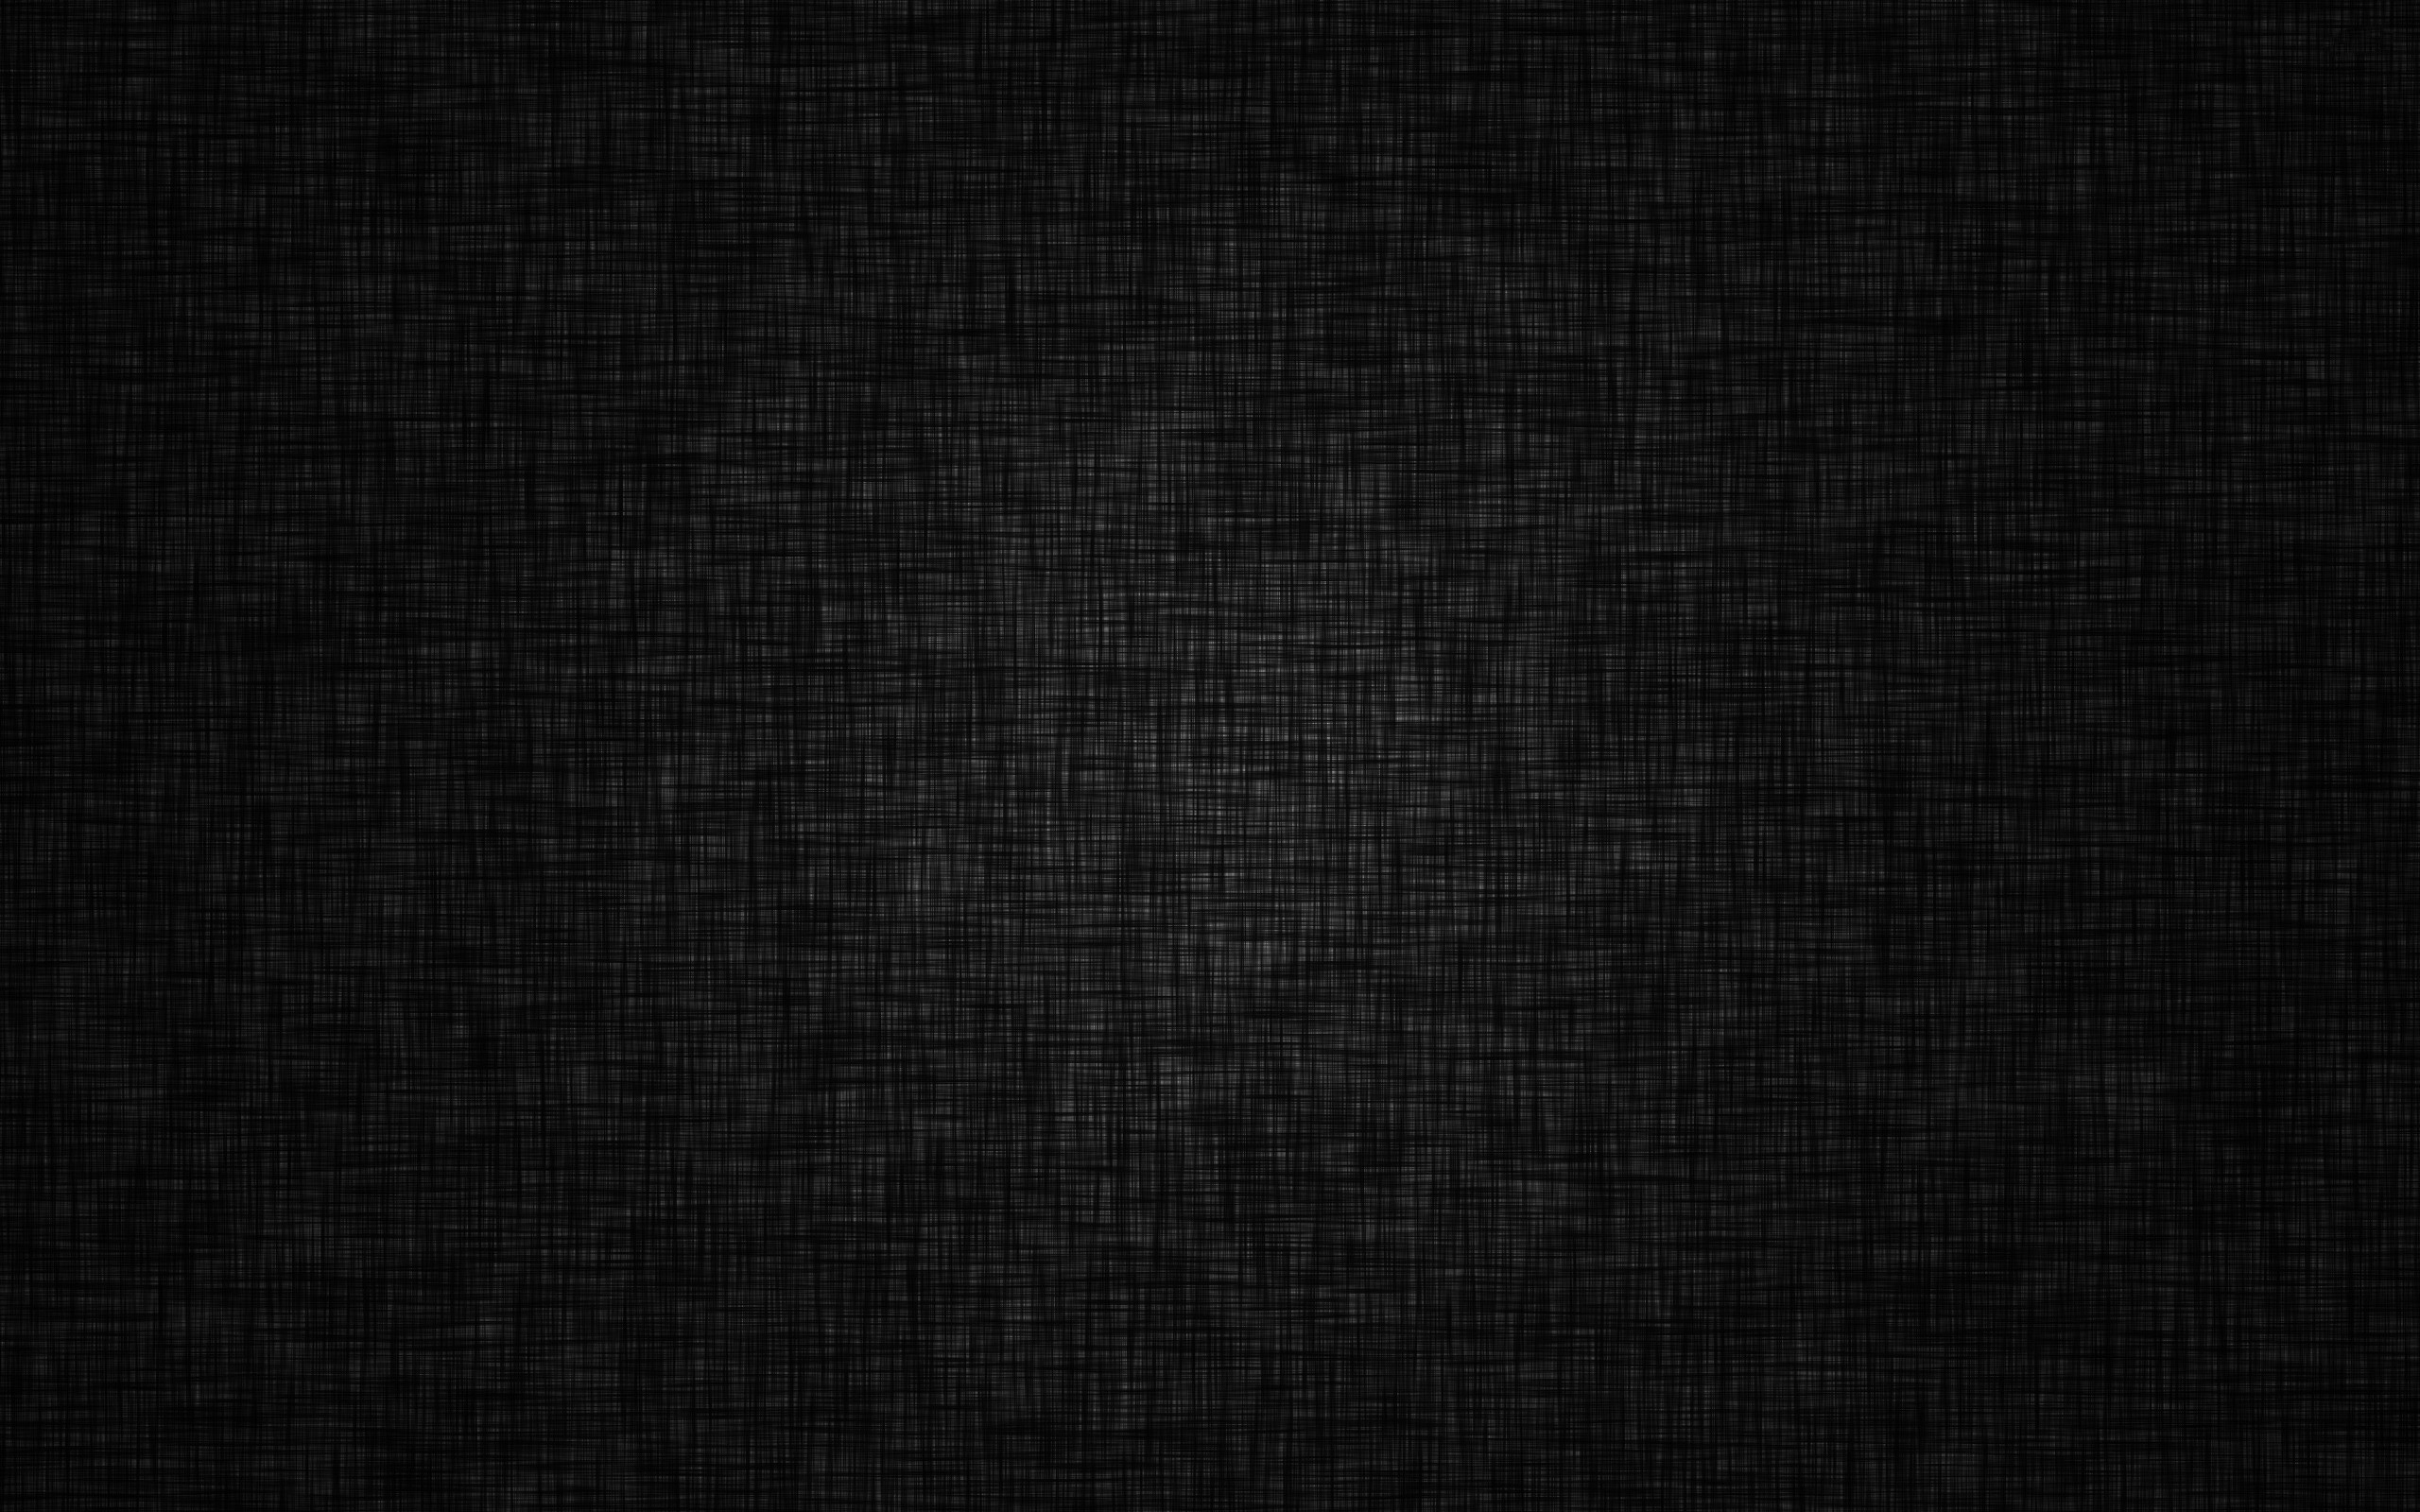 Black Textured Background Download Free Amazing Full Hd